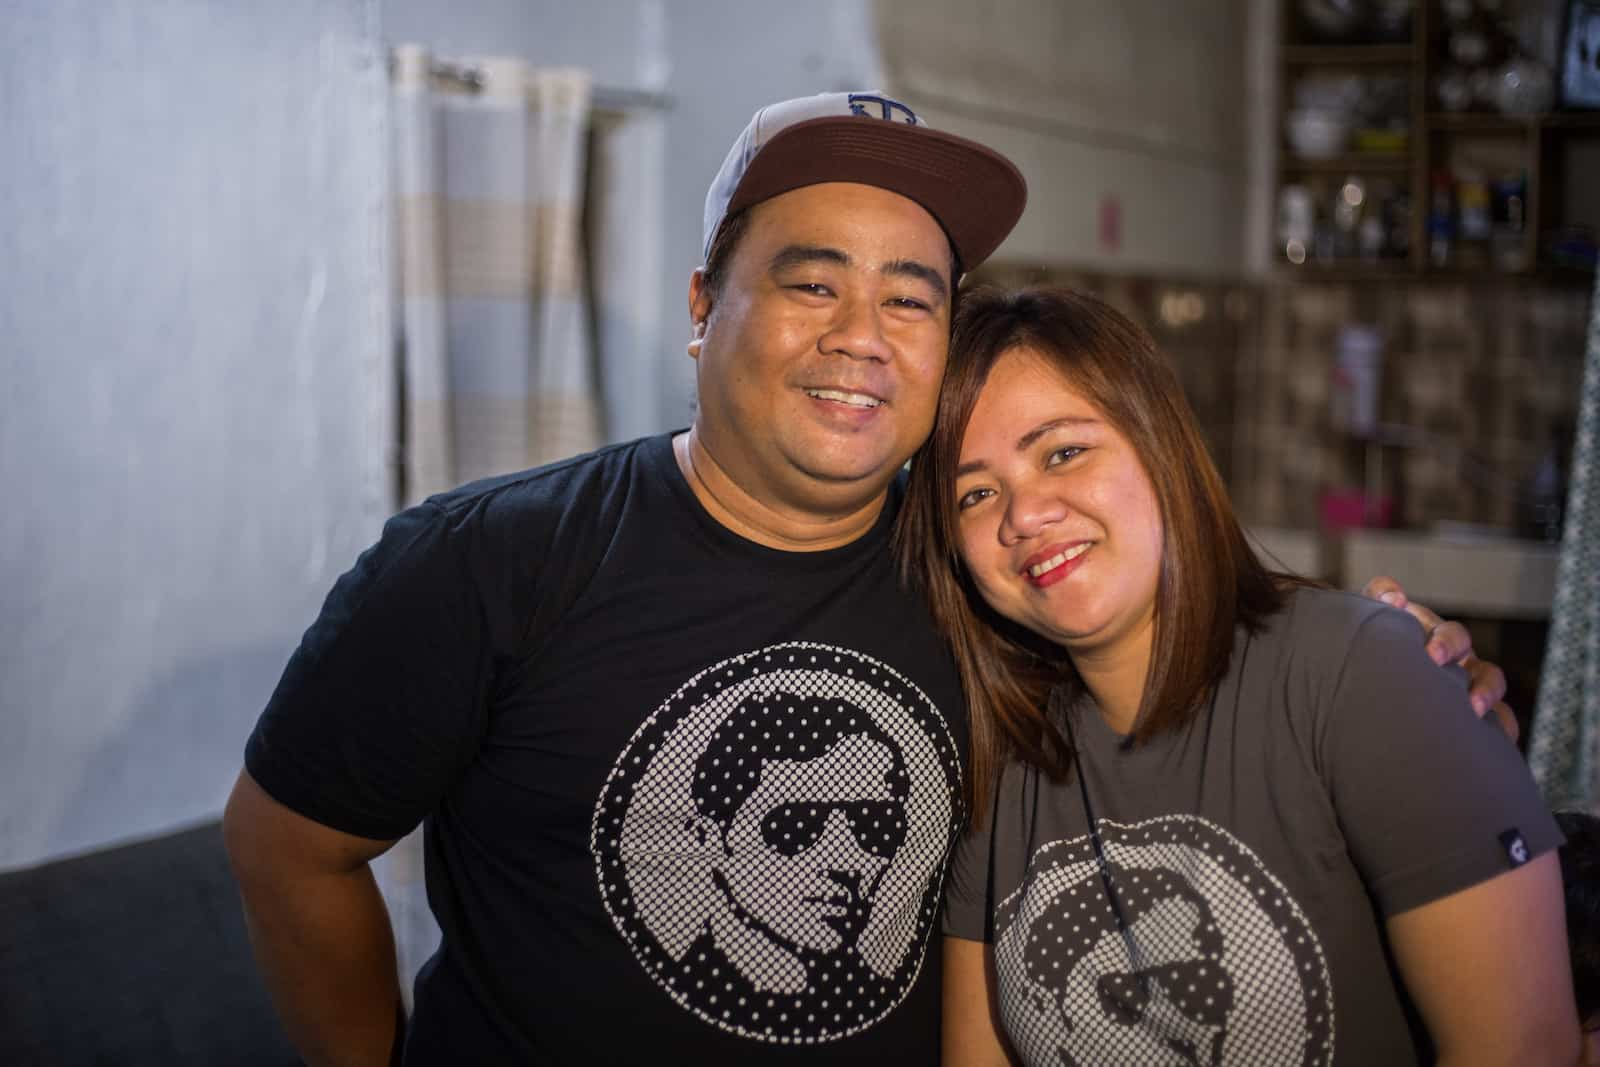 A man and a woman wearing matching black and grey T-shirts smile at the camera, the man's arm around the woman.